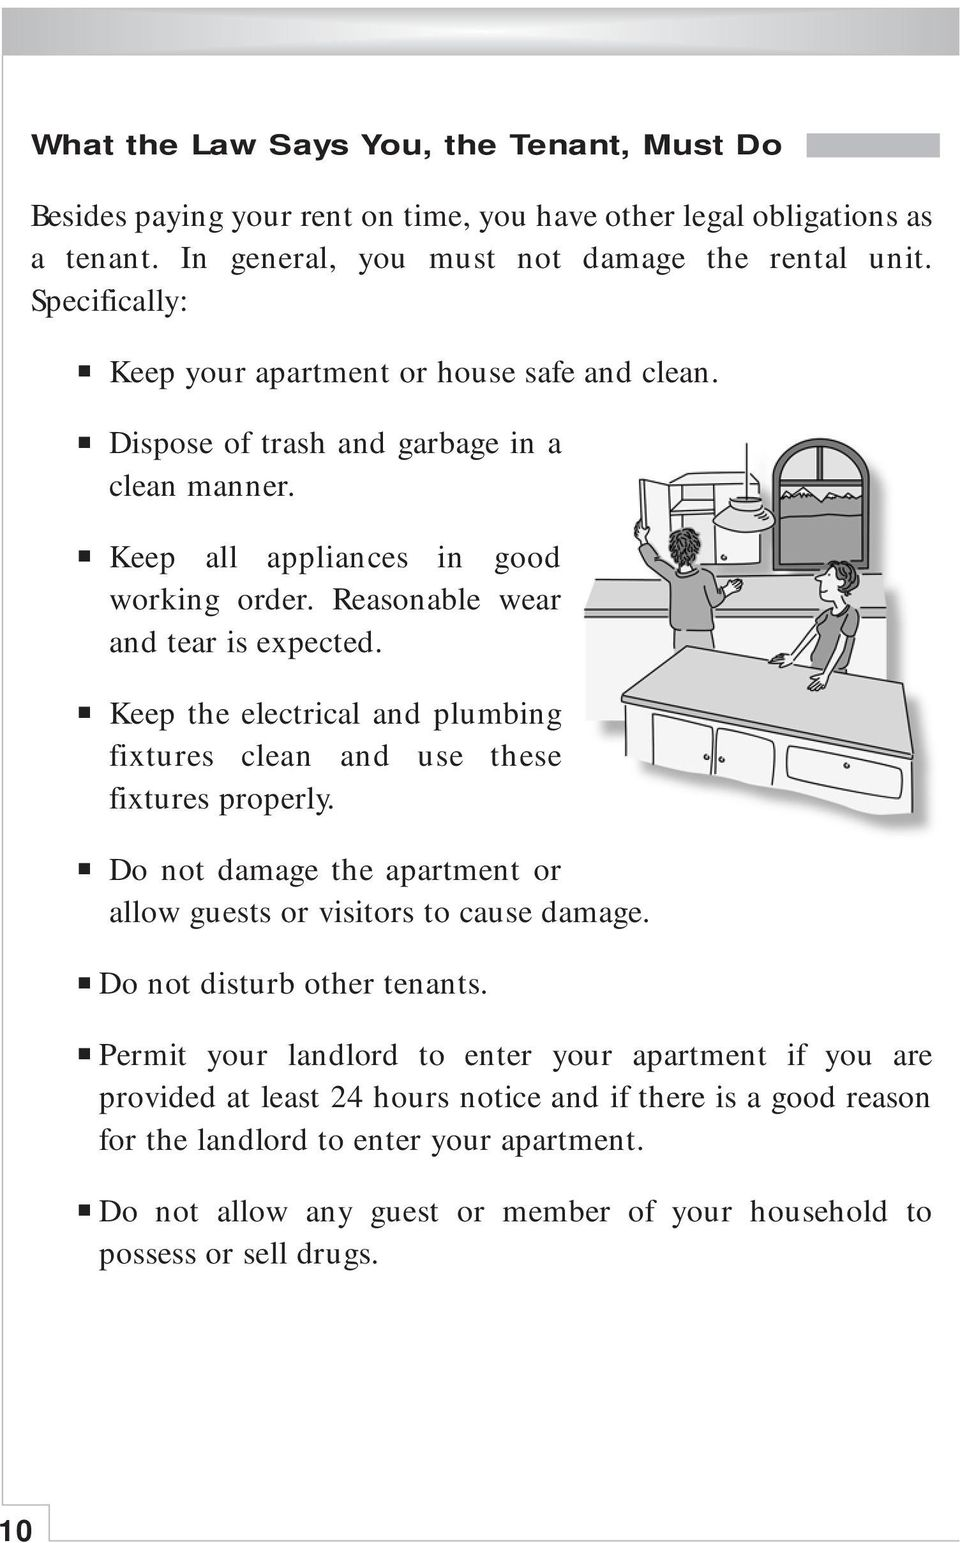 Keep the electrical and plumbing fixtures clean and use these fixtures properly. Do not damage the apartment or allow guests or visitors to cause damage. Do not disturb other tenants.